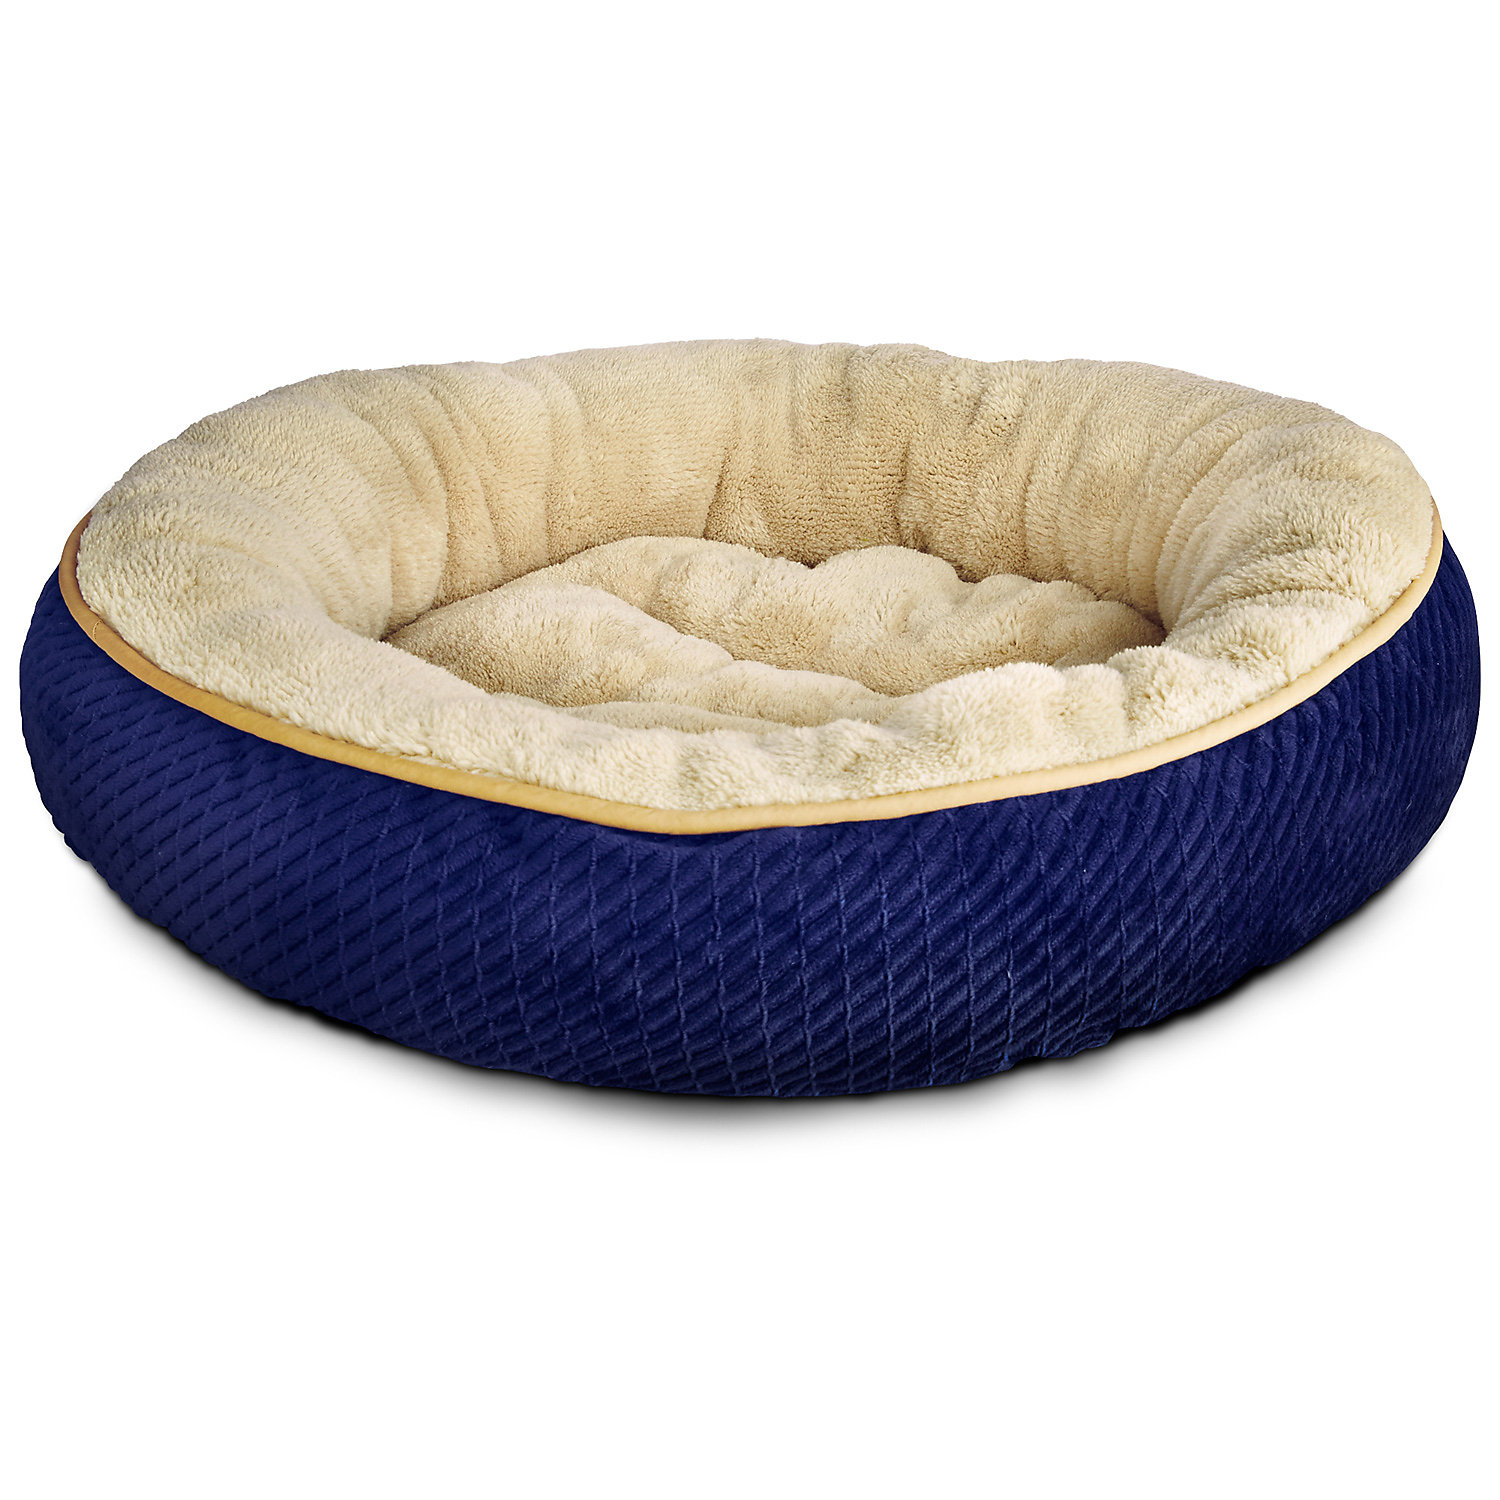 right bed petco upc info beds dog upcitemdb barcode zoom com